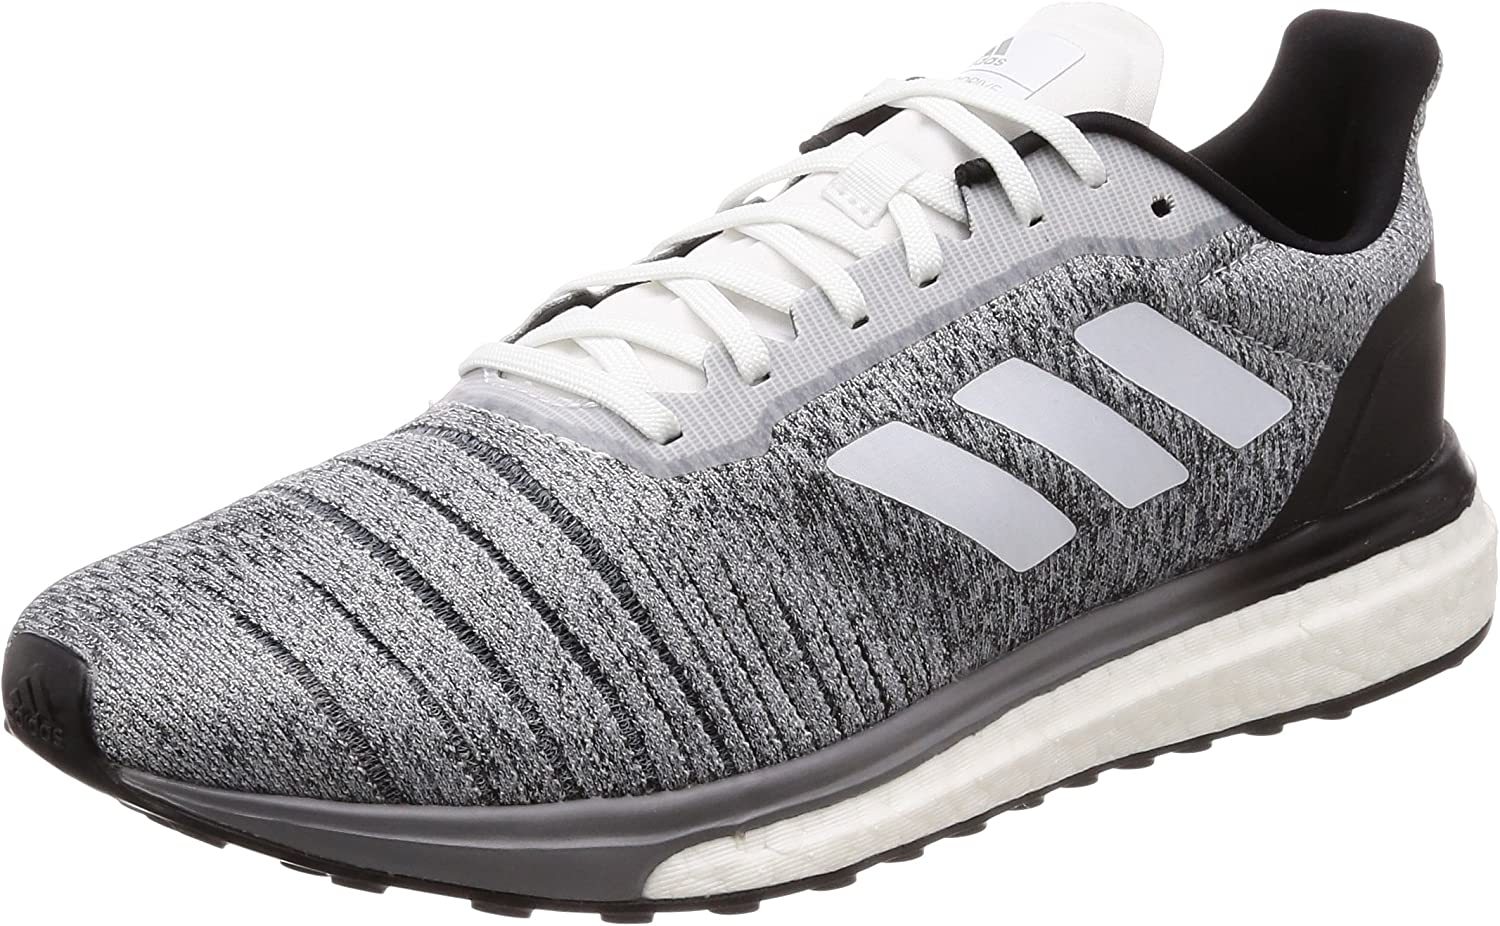 Adidas Solar Drive Running shoes - AW18